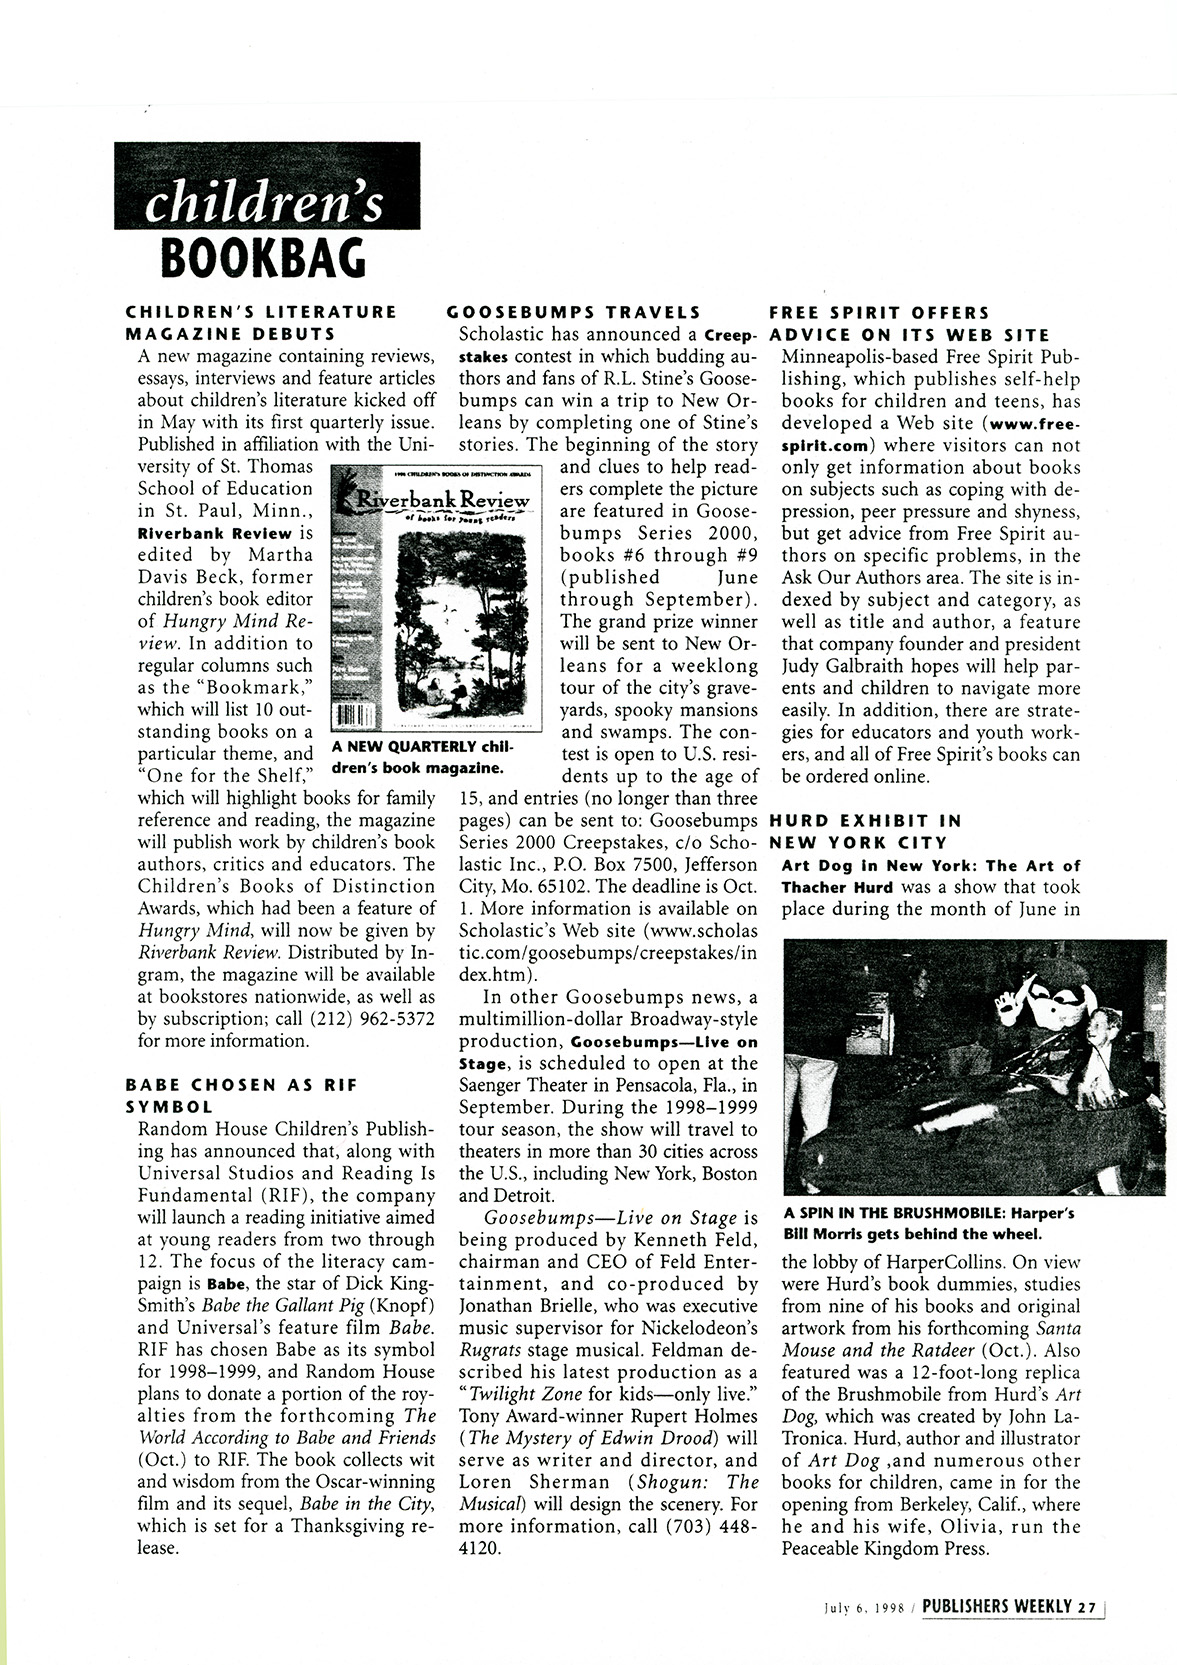 Publishers Weekly piece, when magazine appeared.